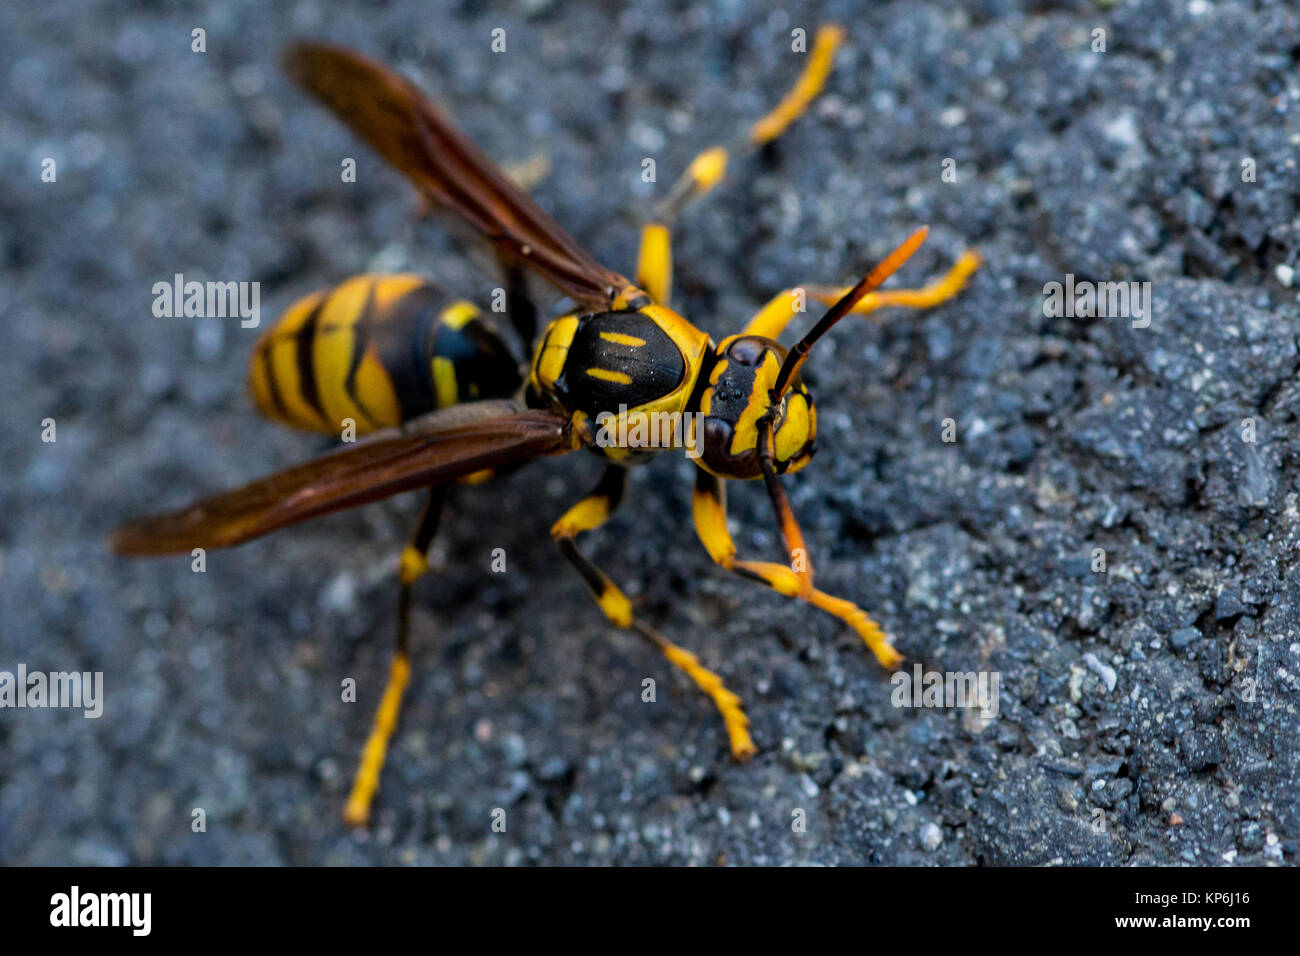 A wasp crawls along the sidewalk on a chilly November day in Japan. - Stock Image